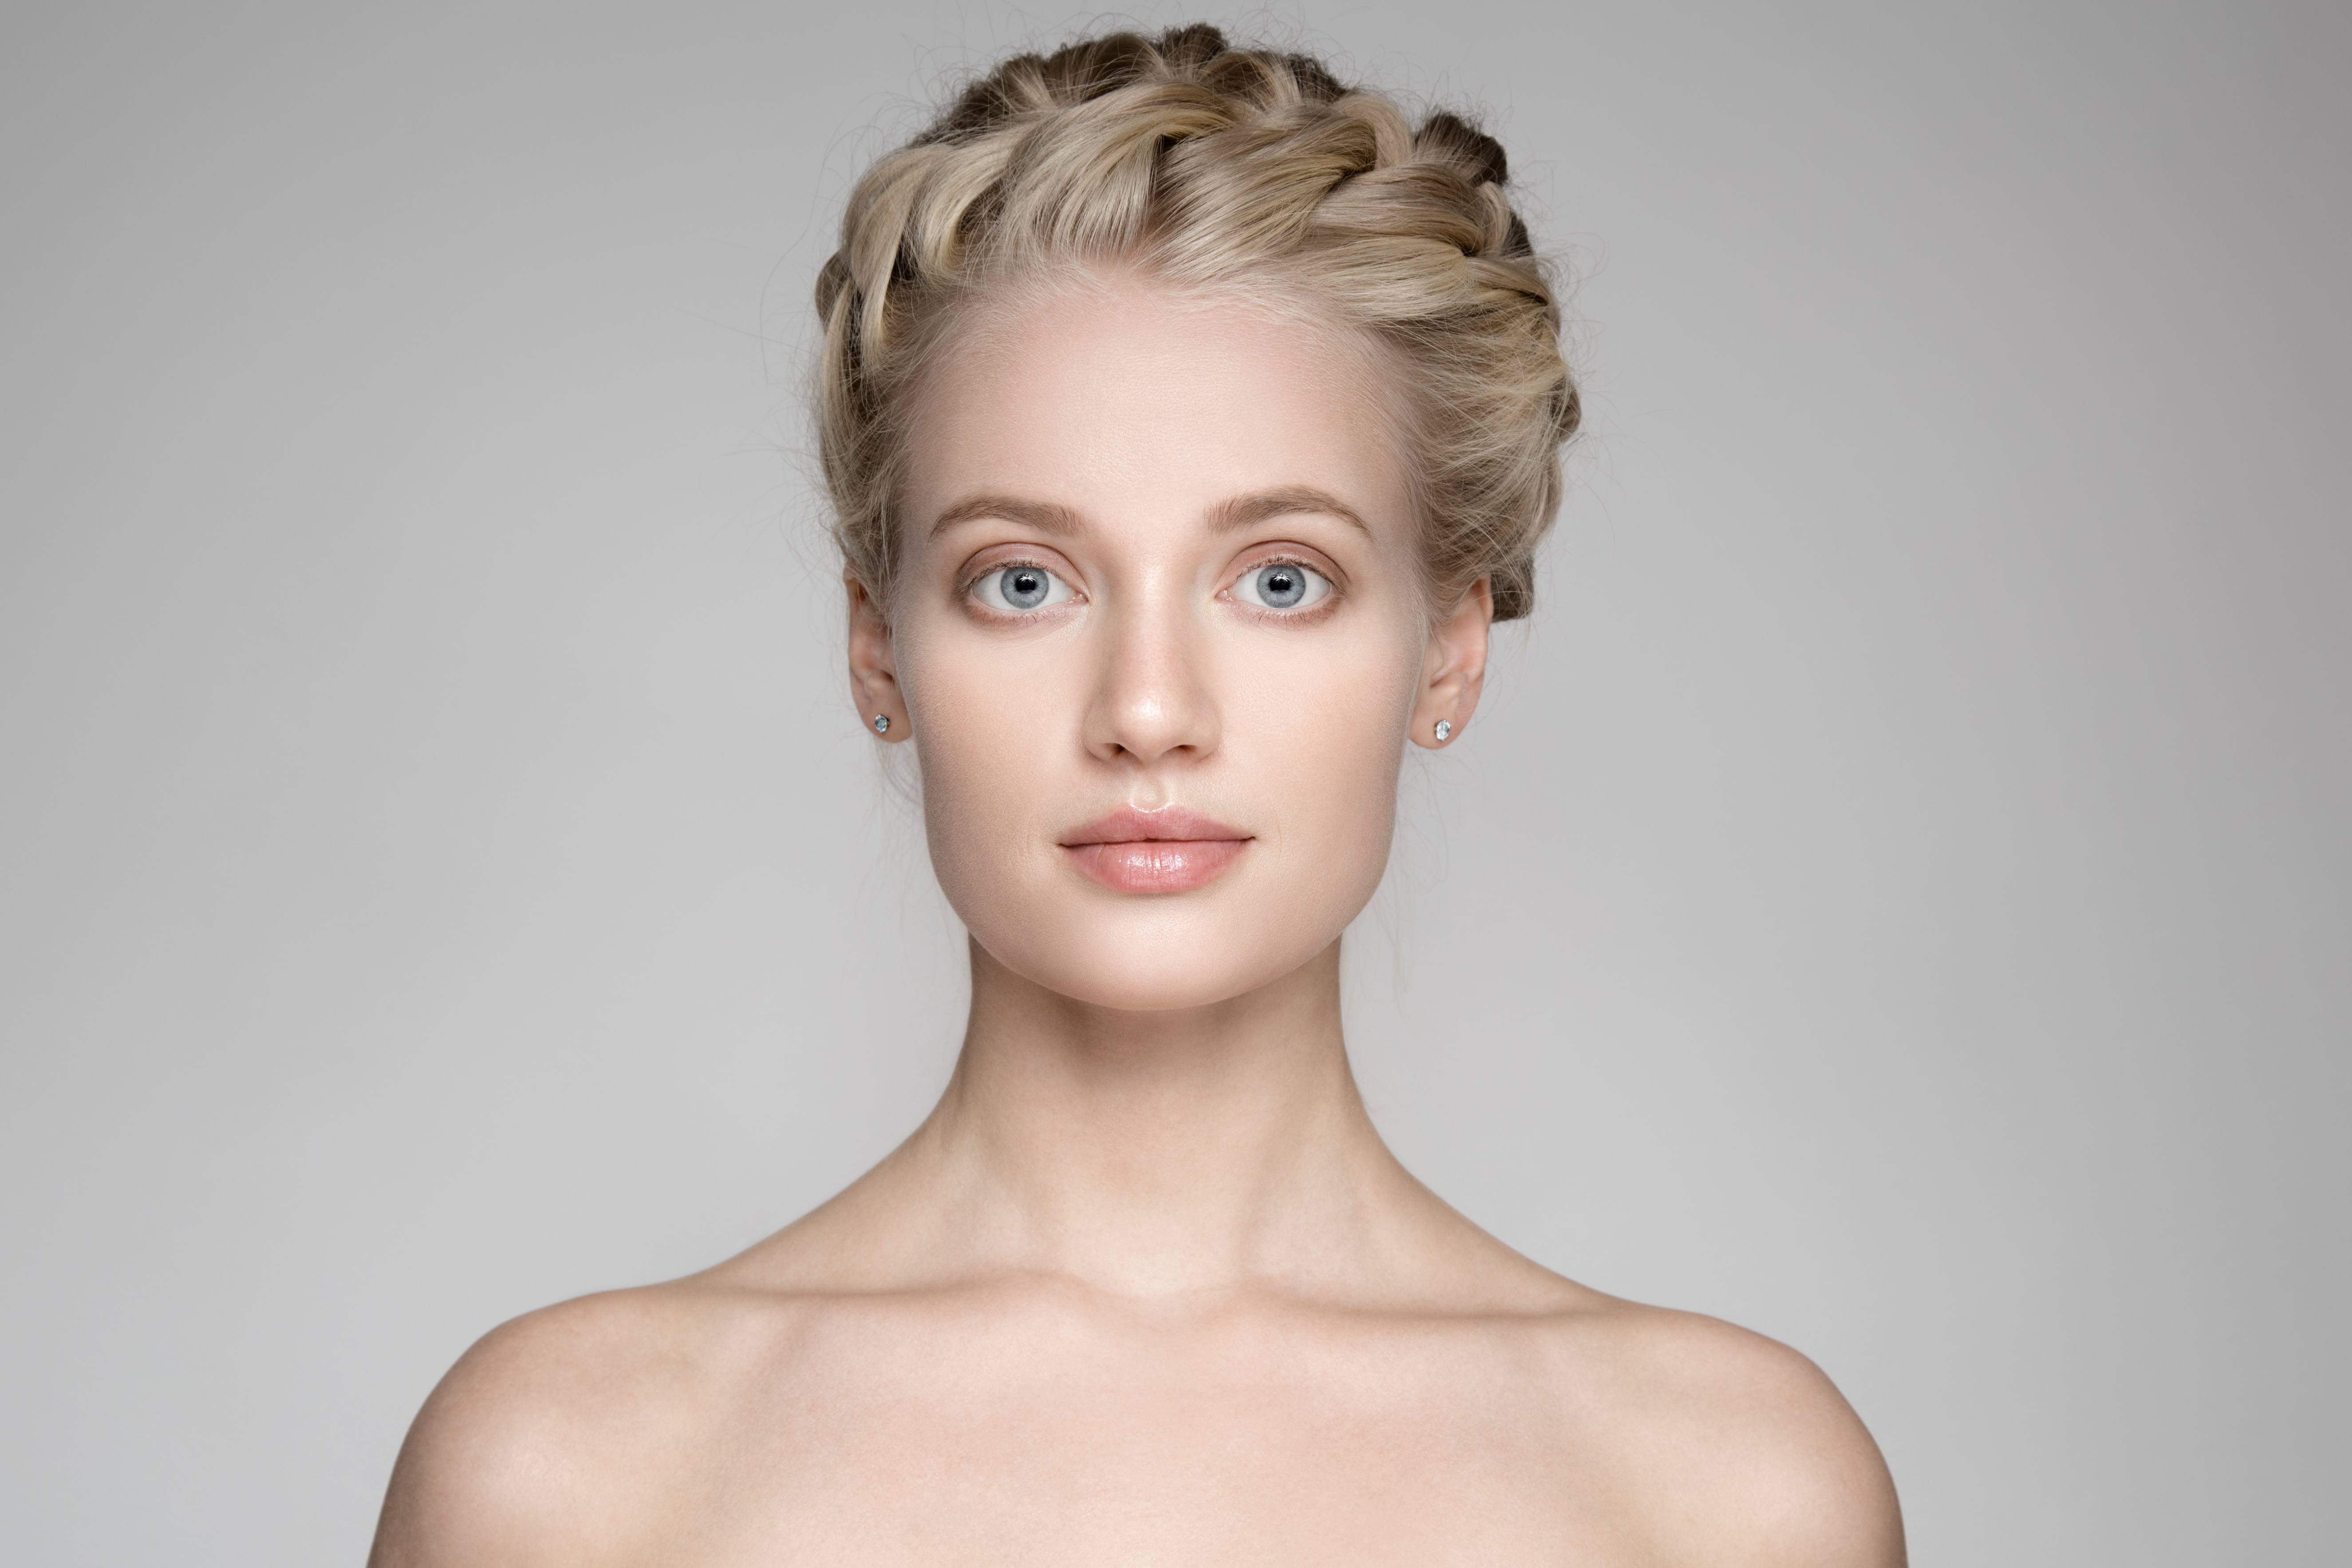 Portrait Of A Beautiful Young Blond Woman With Braid Crown Hairs